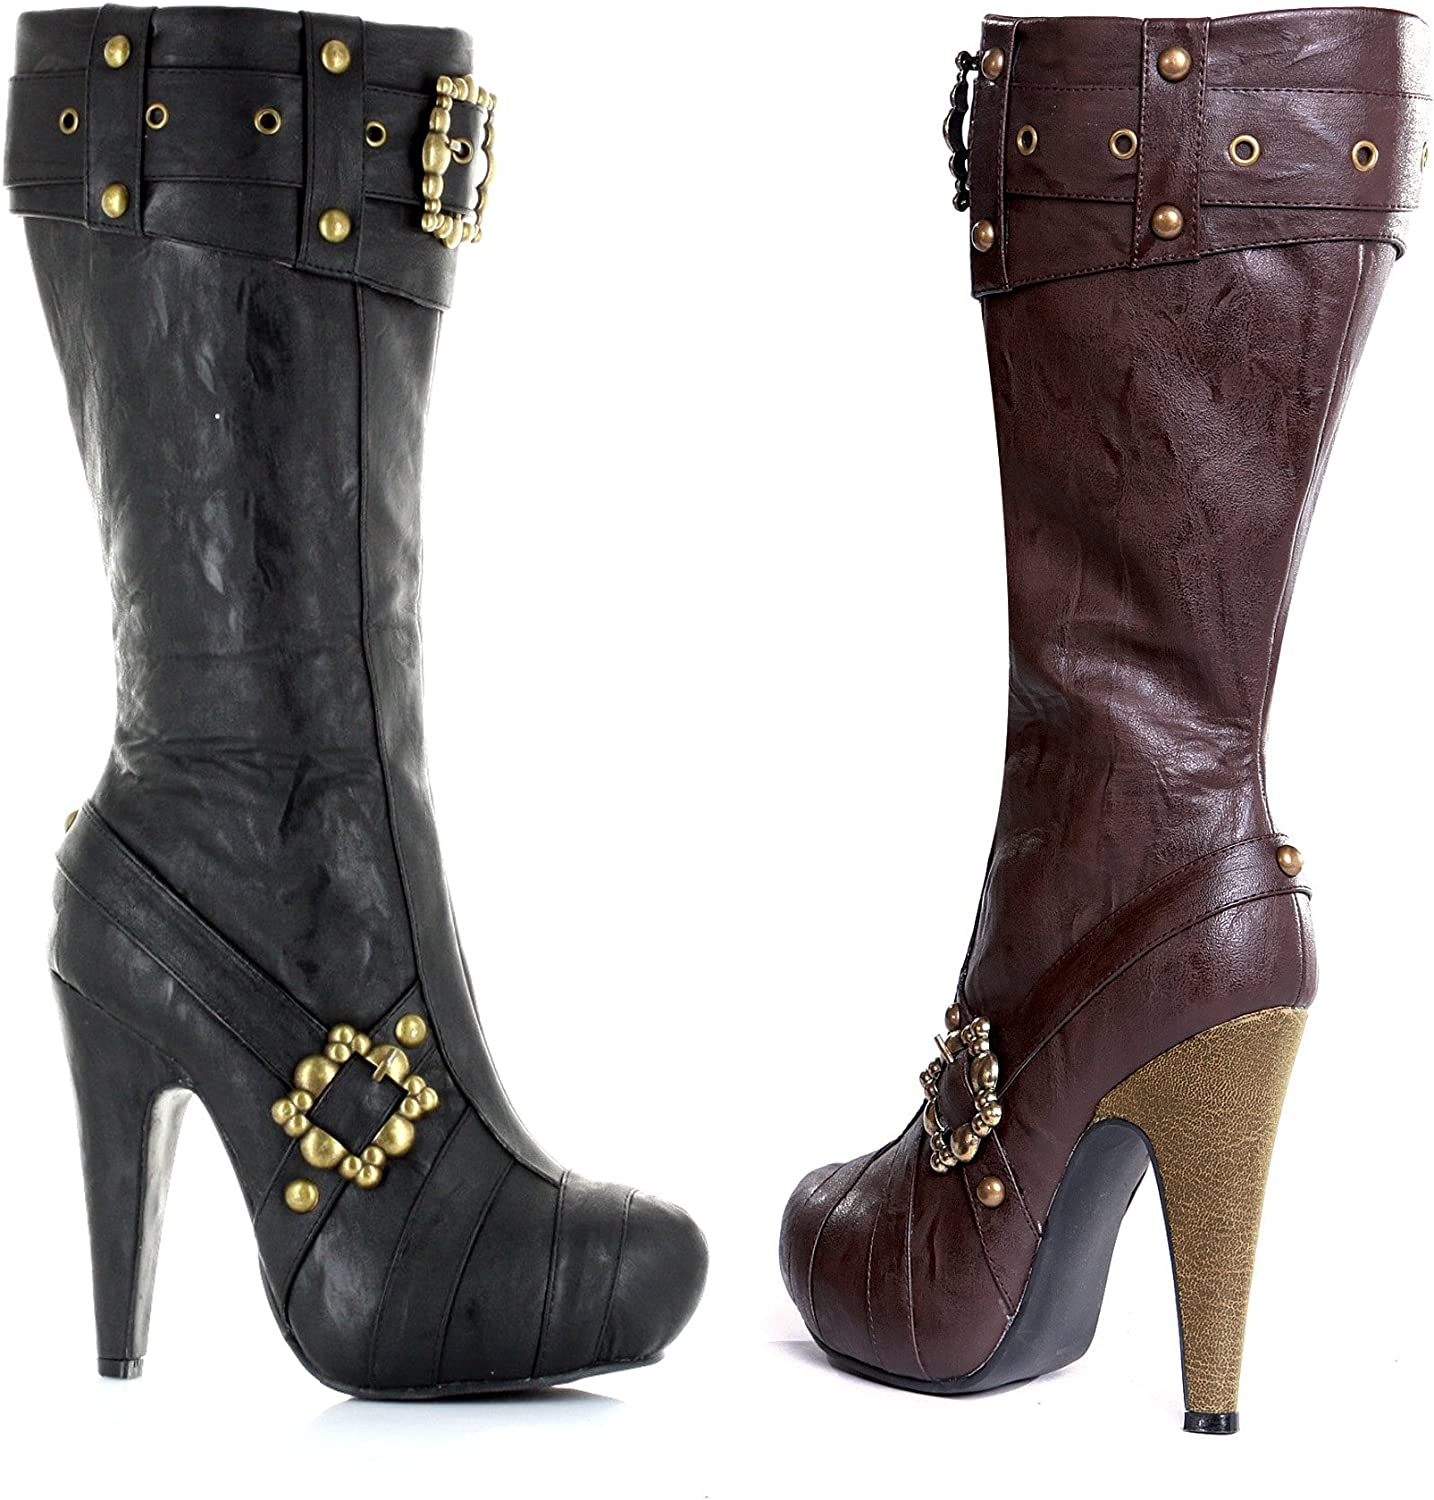 ELLIE 426-AUBREY 4  Knee High Steampunk Boots With Buckles And Studs Women